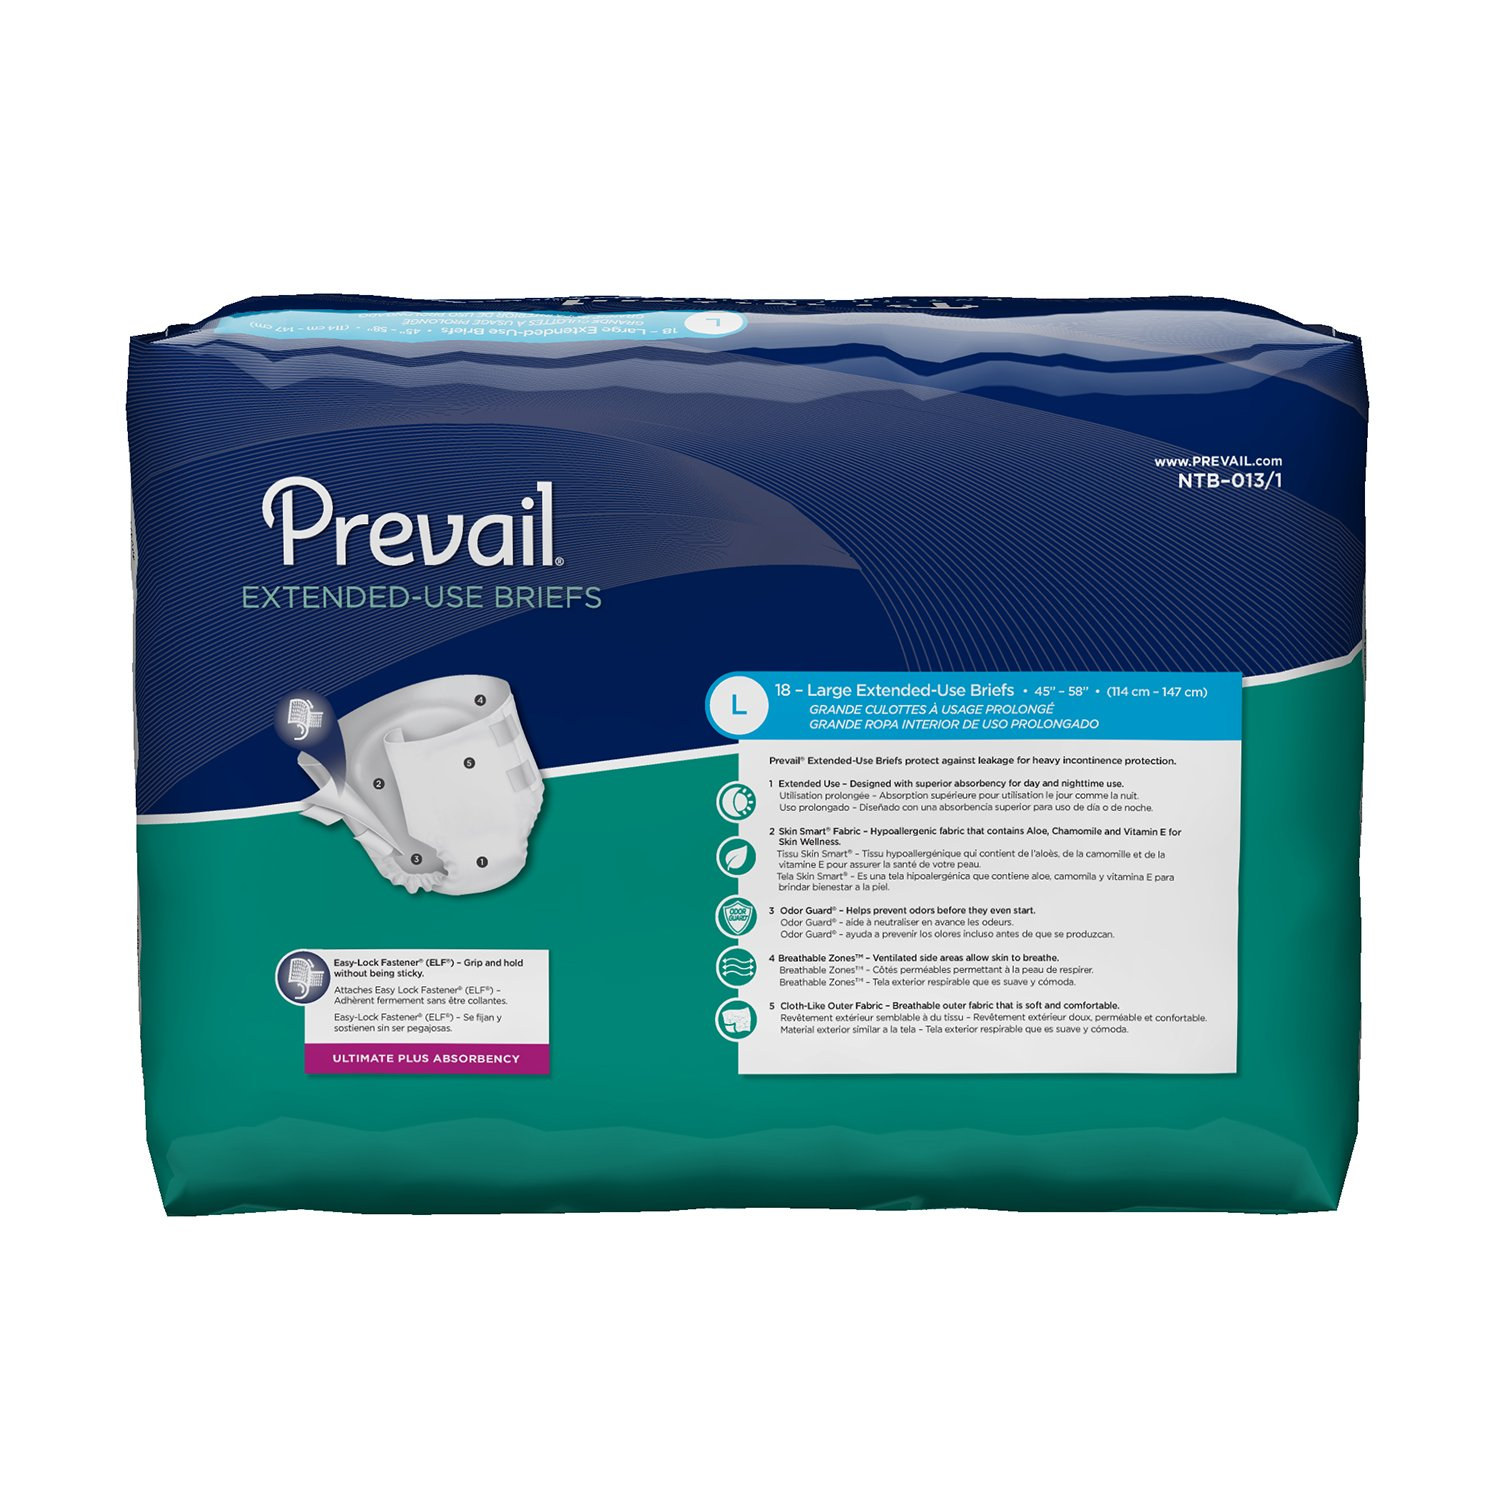 Amazon.com: Prevail Extended Use Incontinence Briefs Large 18 Count (Pack of 4) Breathable Rapid Absorption Discreet Comfort Fit Adult Diapers for Daytime ...